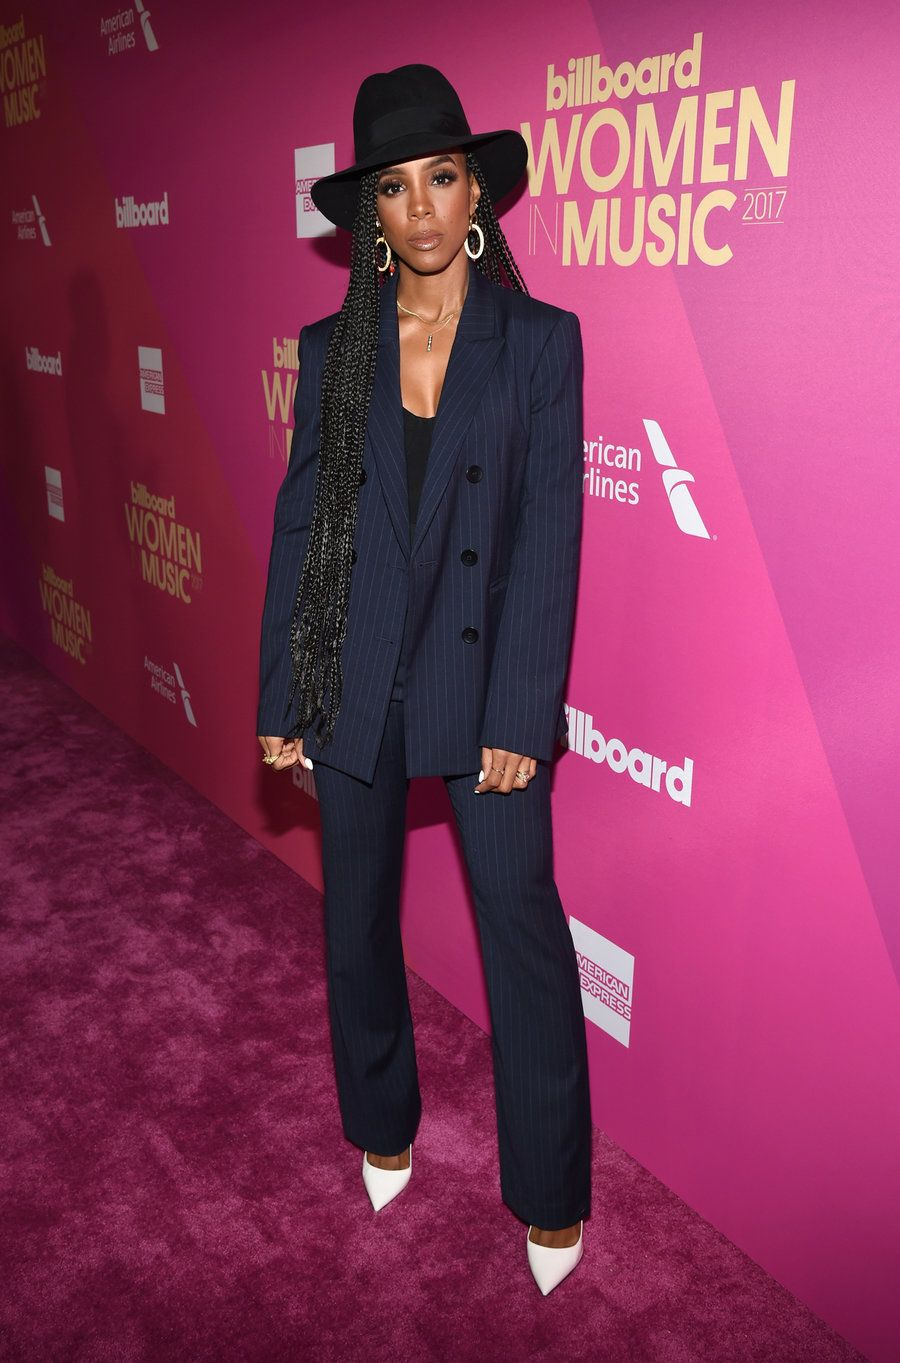 Women In Music 2017: Photos From The Red Carpet | Pinterest